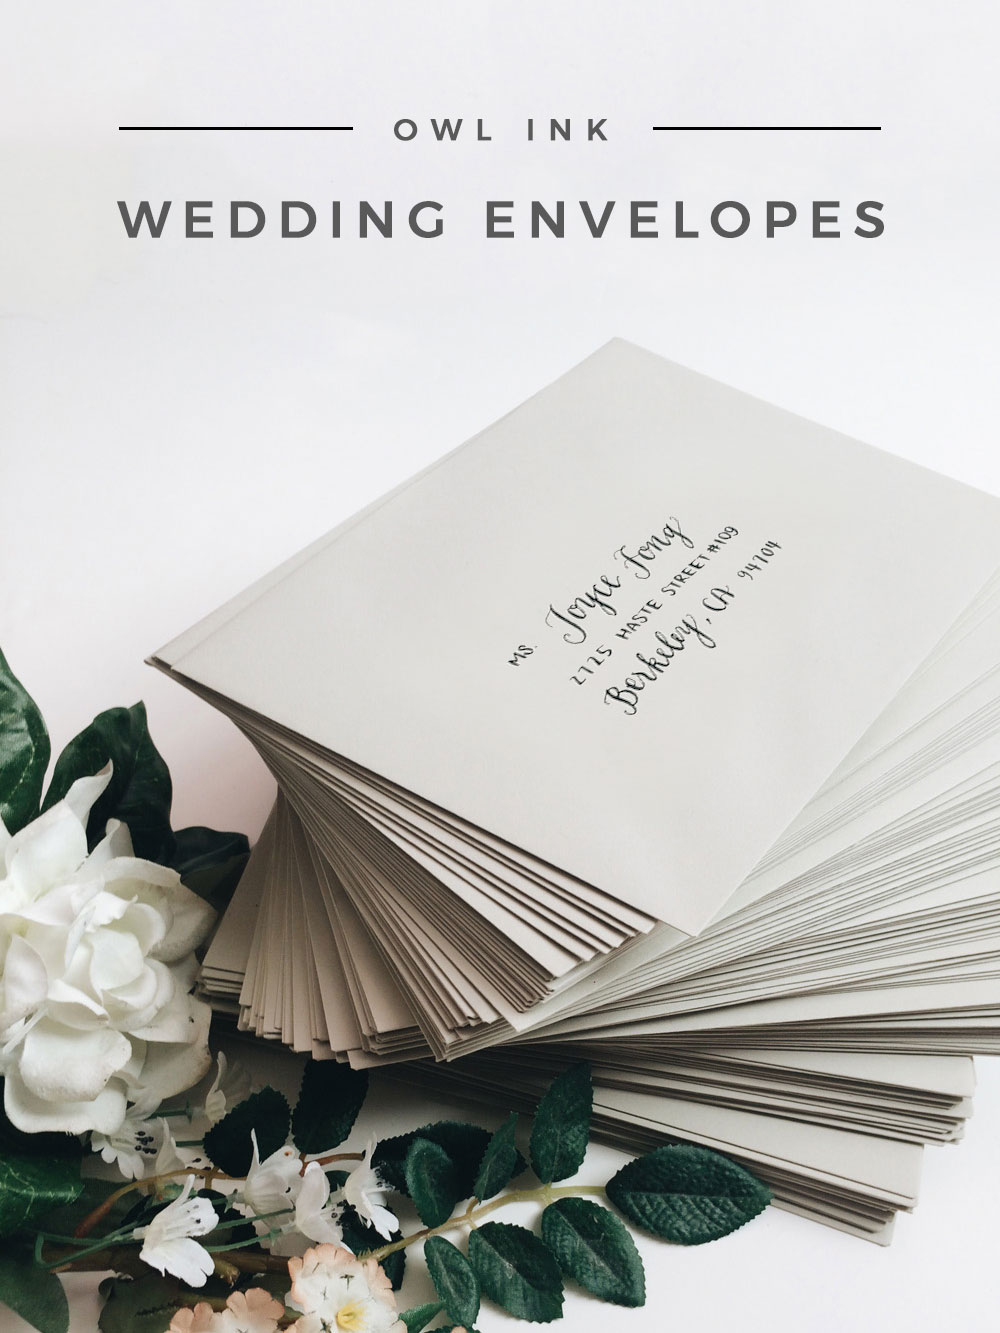 Owl Ink Wedding Envelopes